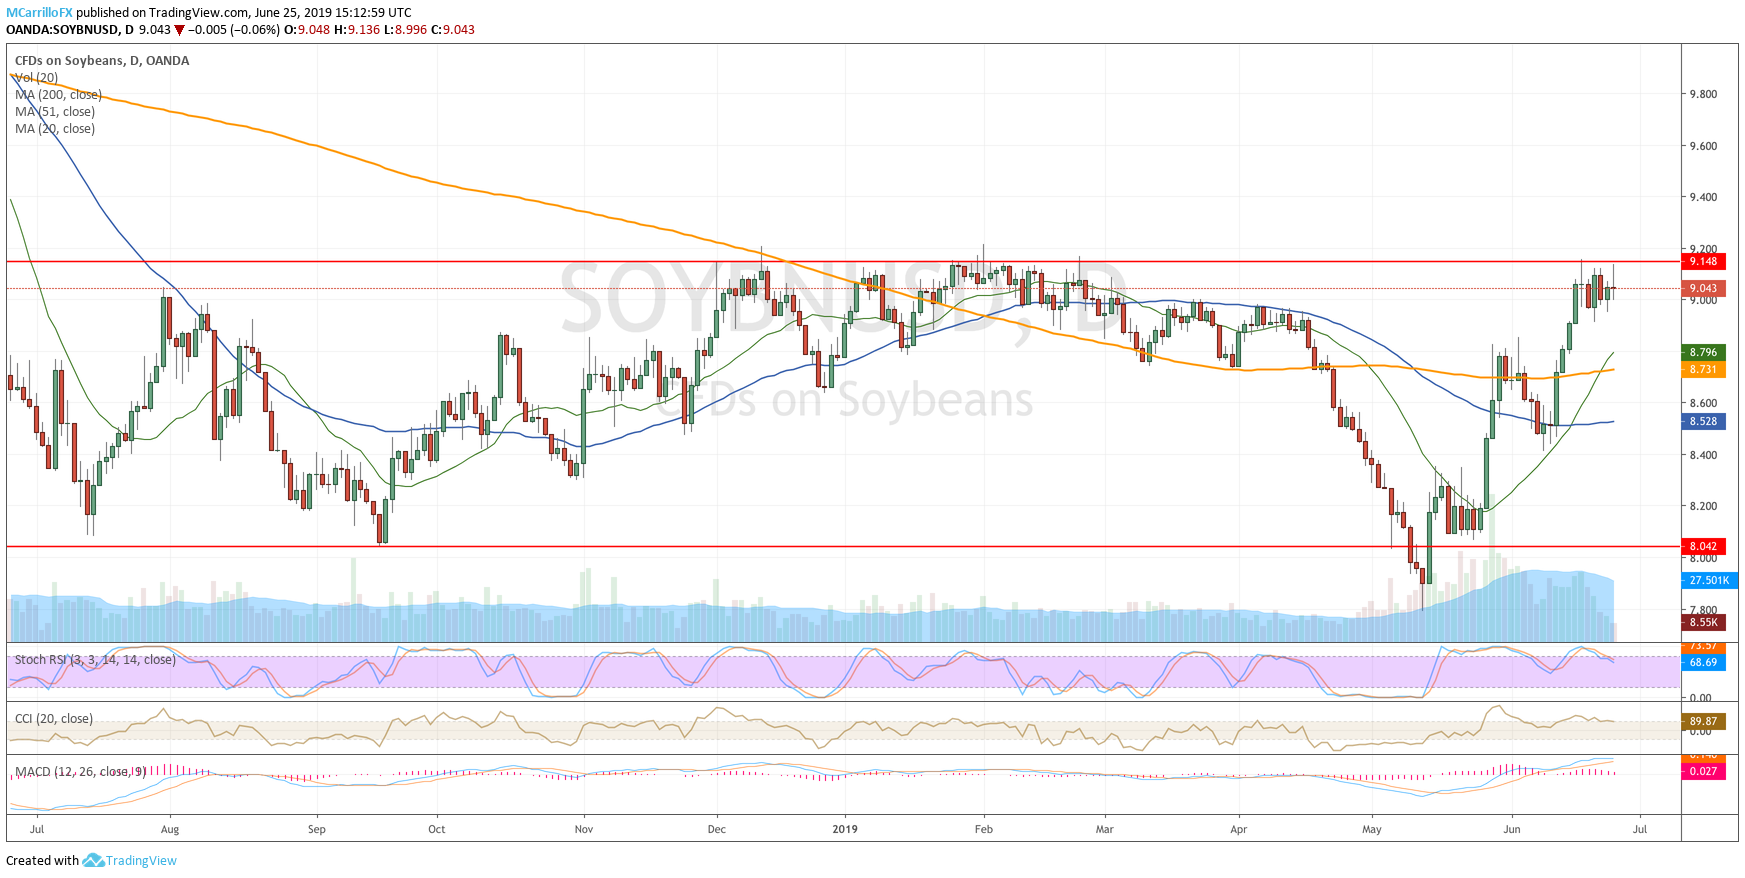 Soybeans Daily chart June 25